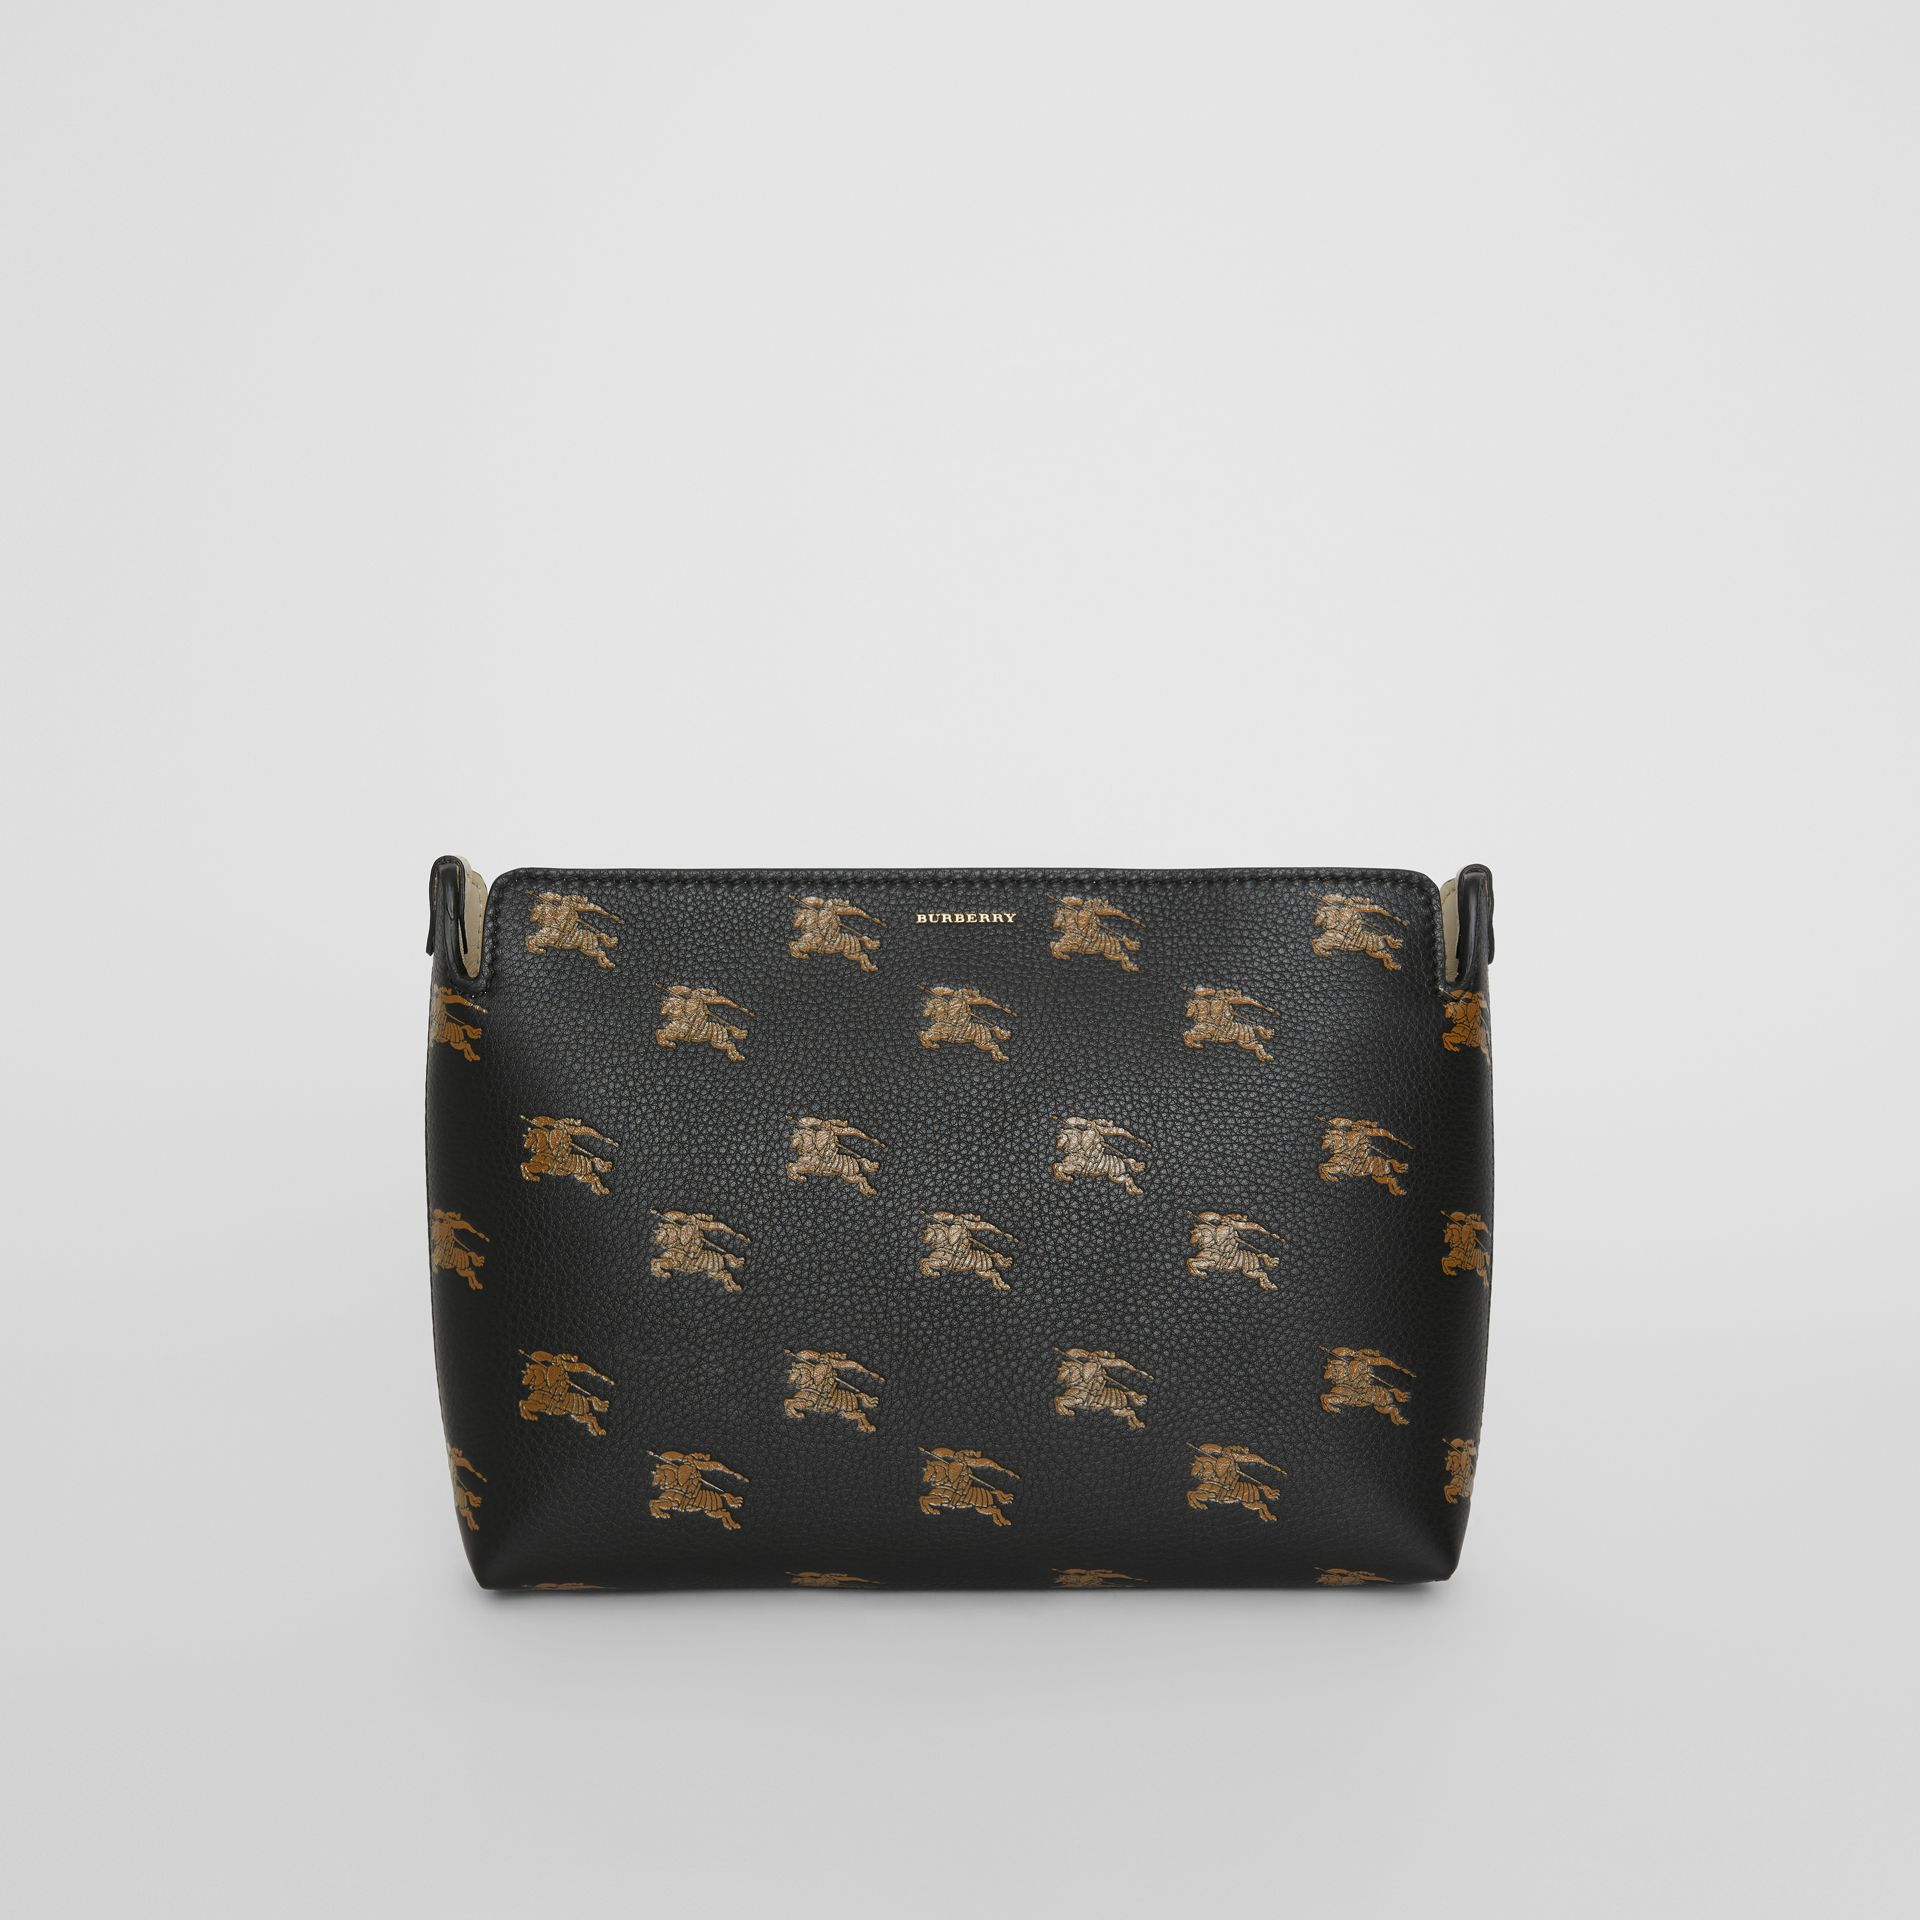 Medium Equestrian Knight Leather Clutch in Black - Women | Burberry - gallery image 0